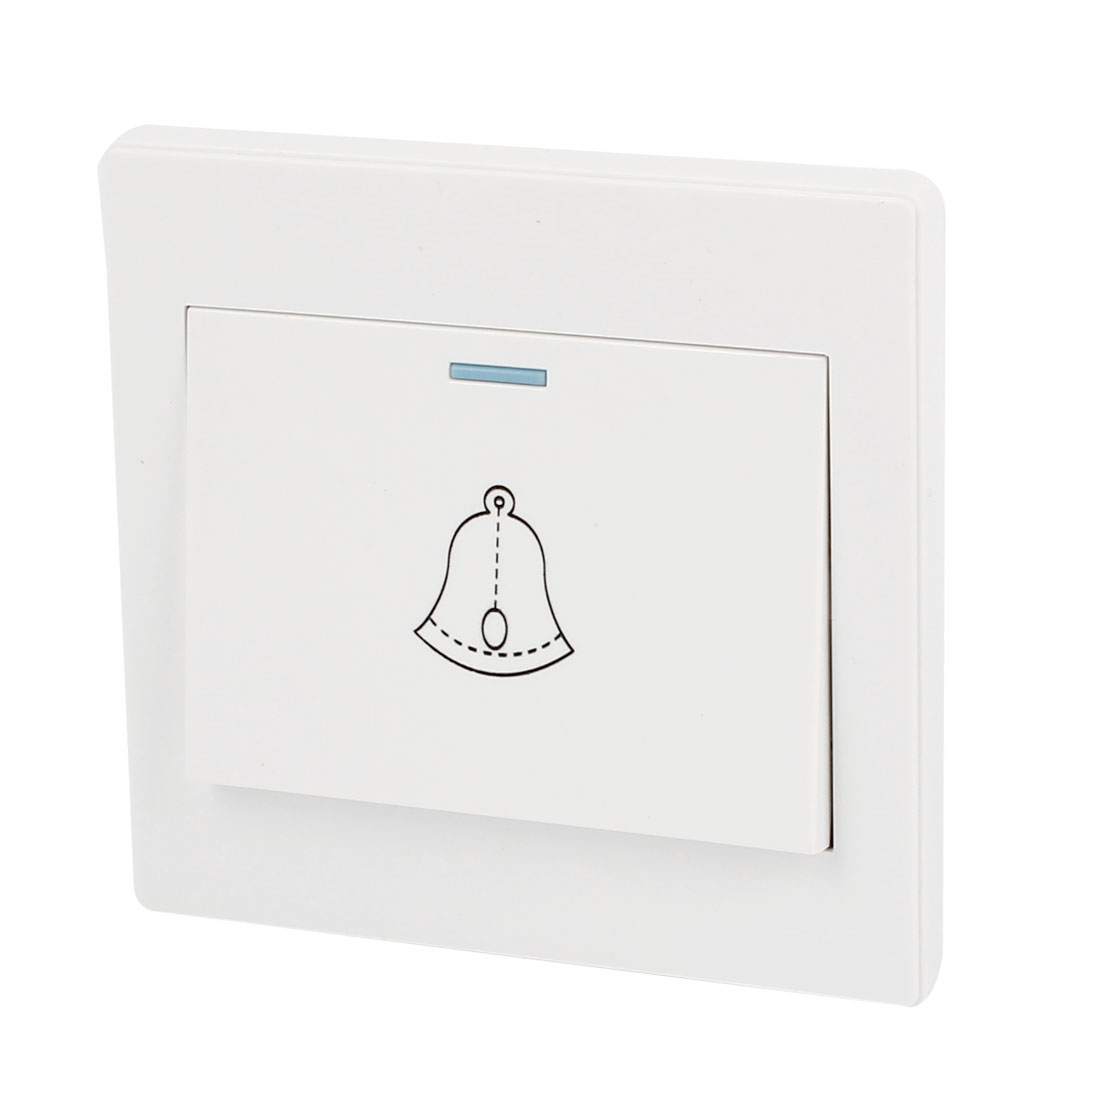 Bell Printed Square Shaped White 250V 10A Wall Mount Doorbell Switch Plate